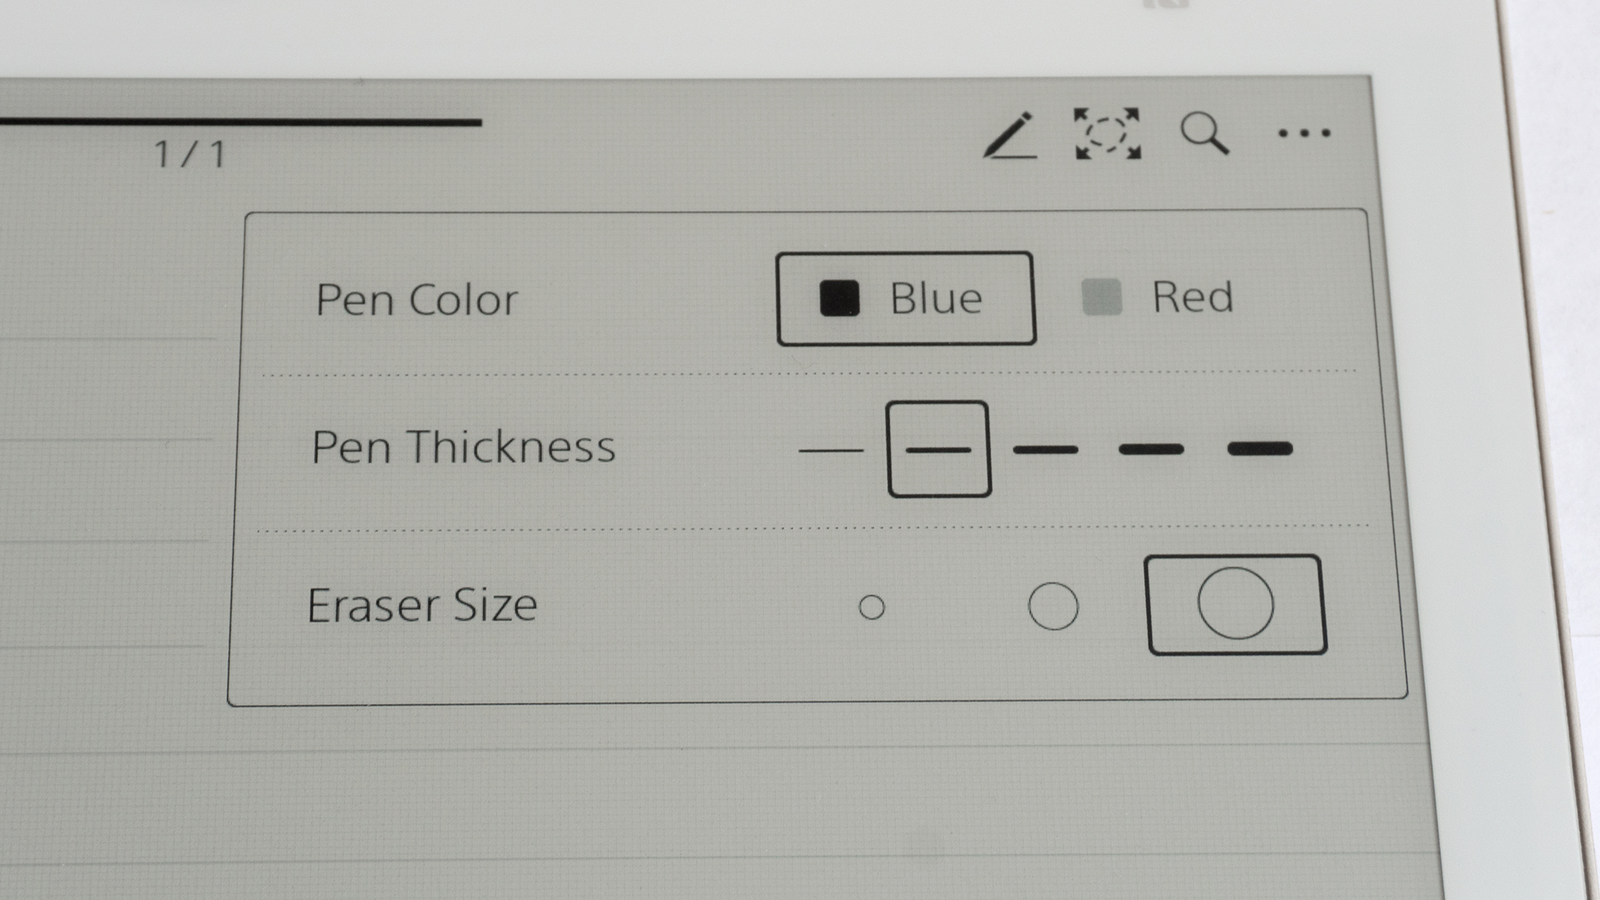 Sony has taken a much simpler approach when it comes to customizing the functionality and appearance of the stylus.